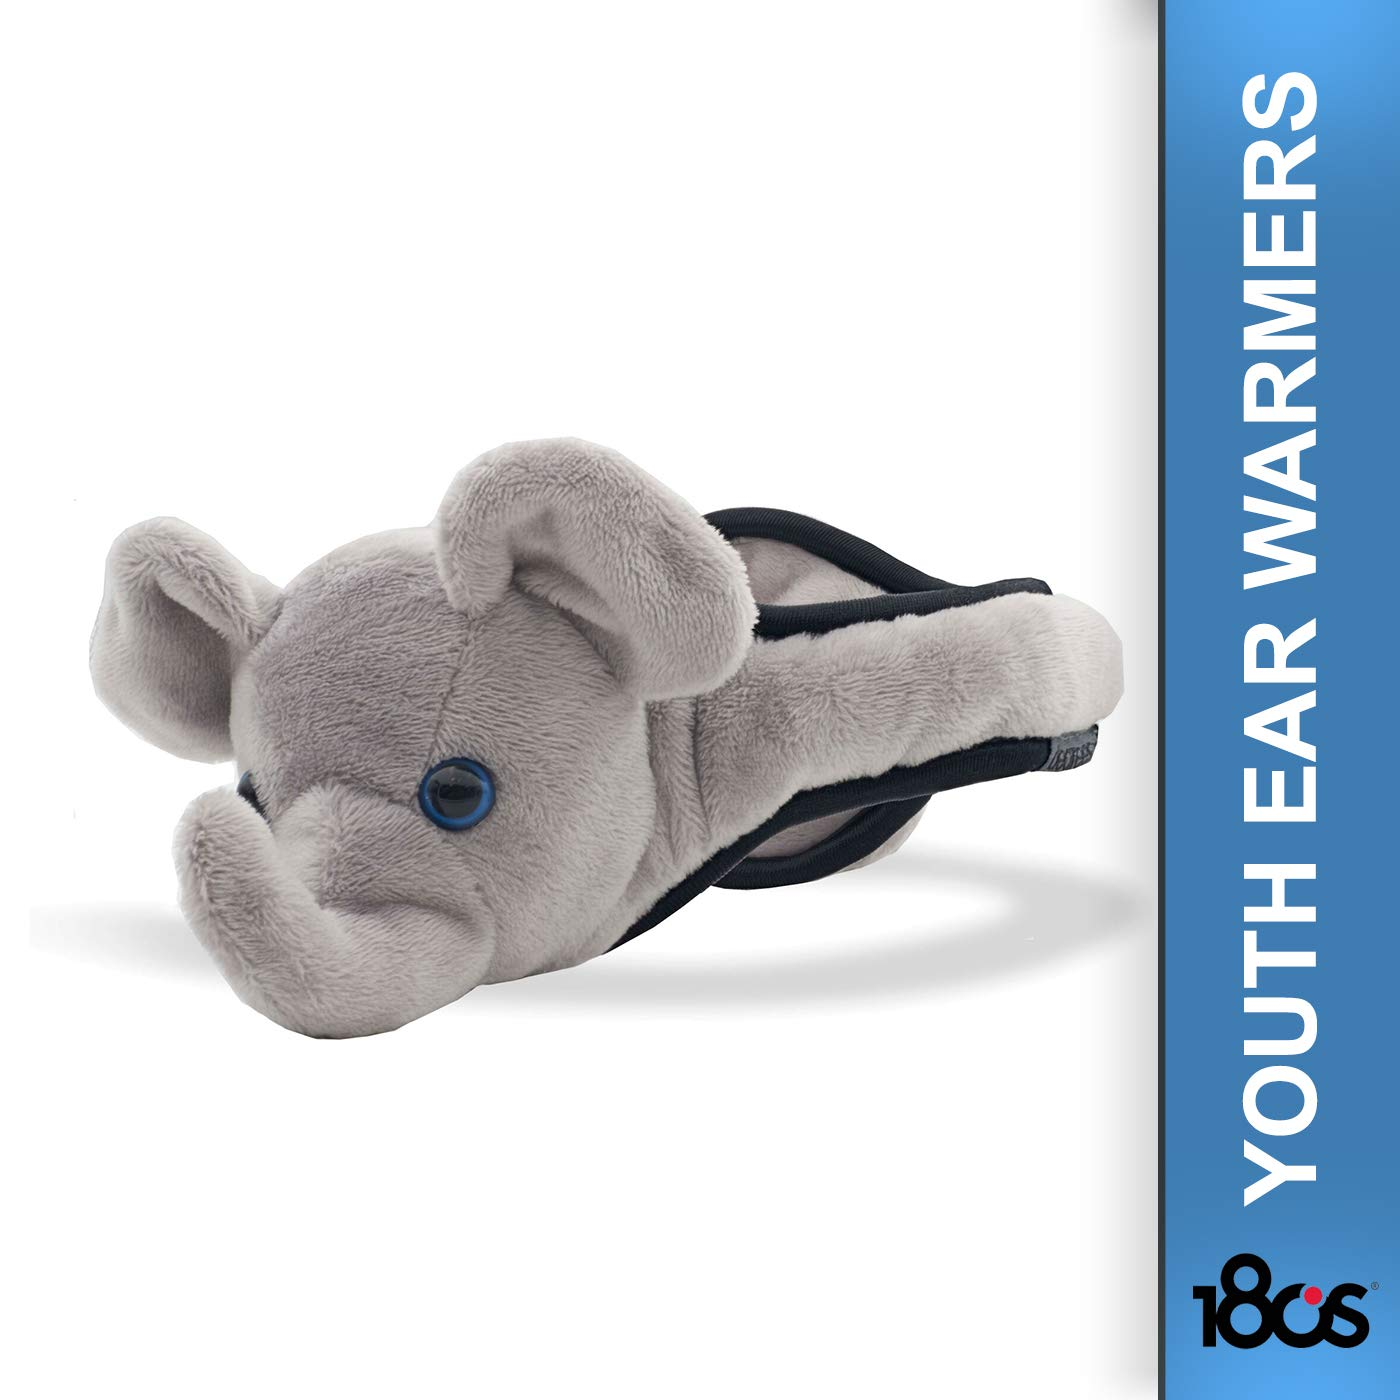 180s Youth and Kids Animal Design Plush Thermo Insulated Ear Warmers – Adjustable Size Gray